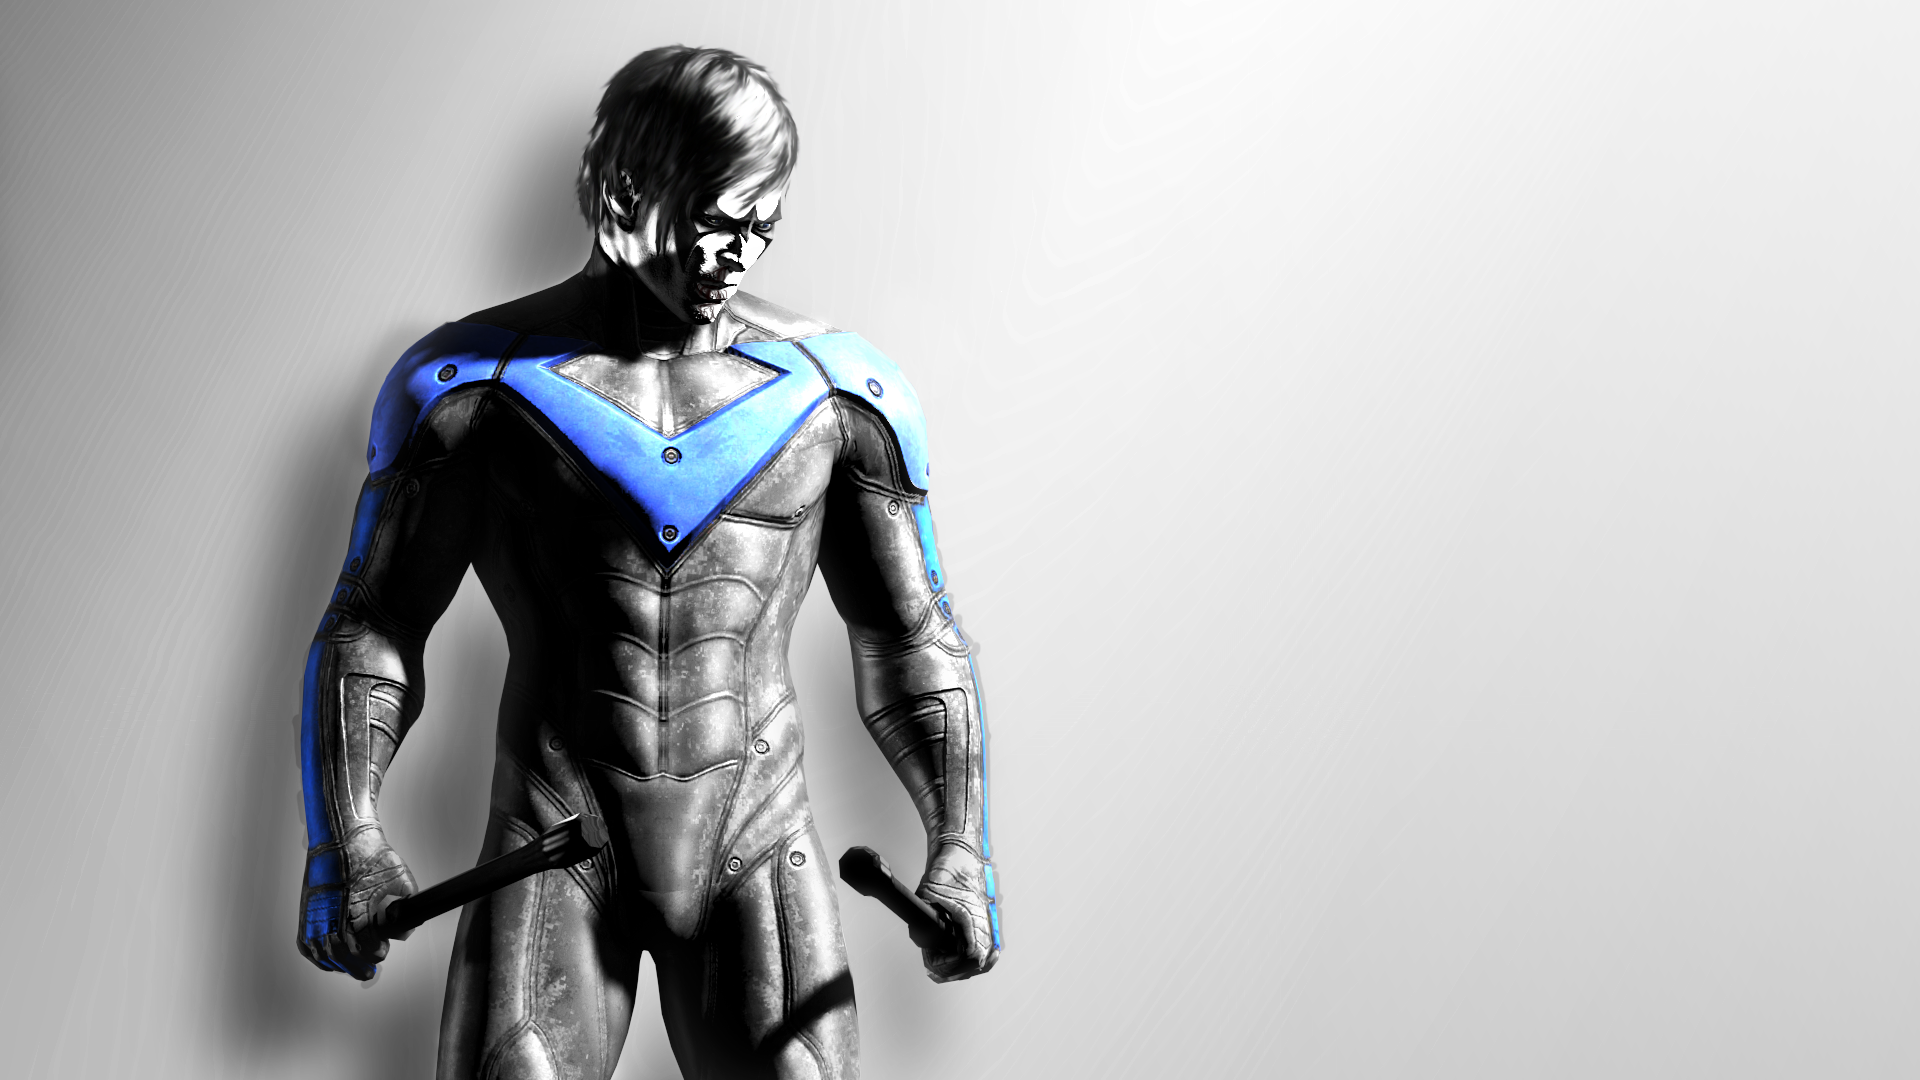 The Nightwing by Rammkap